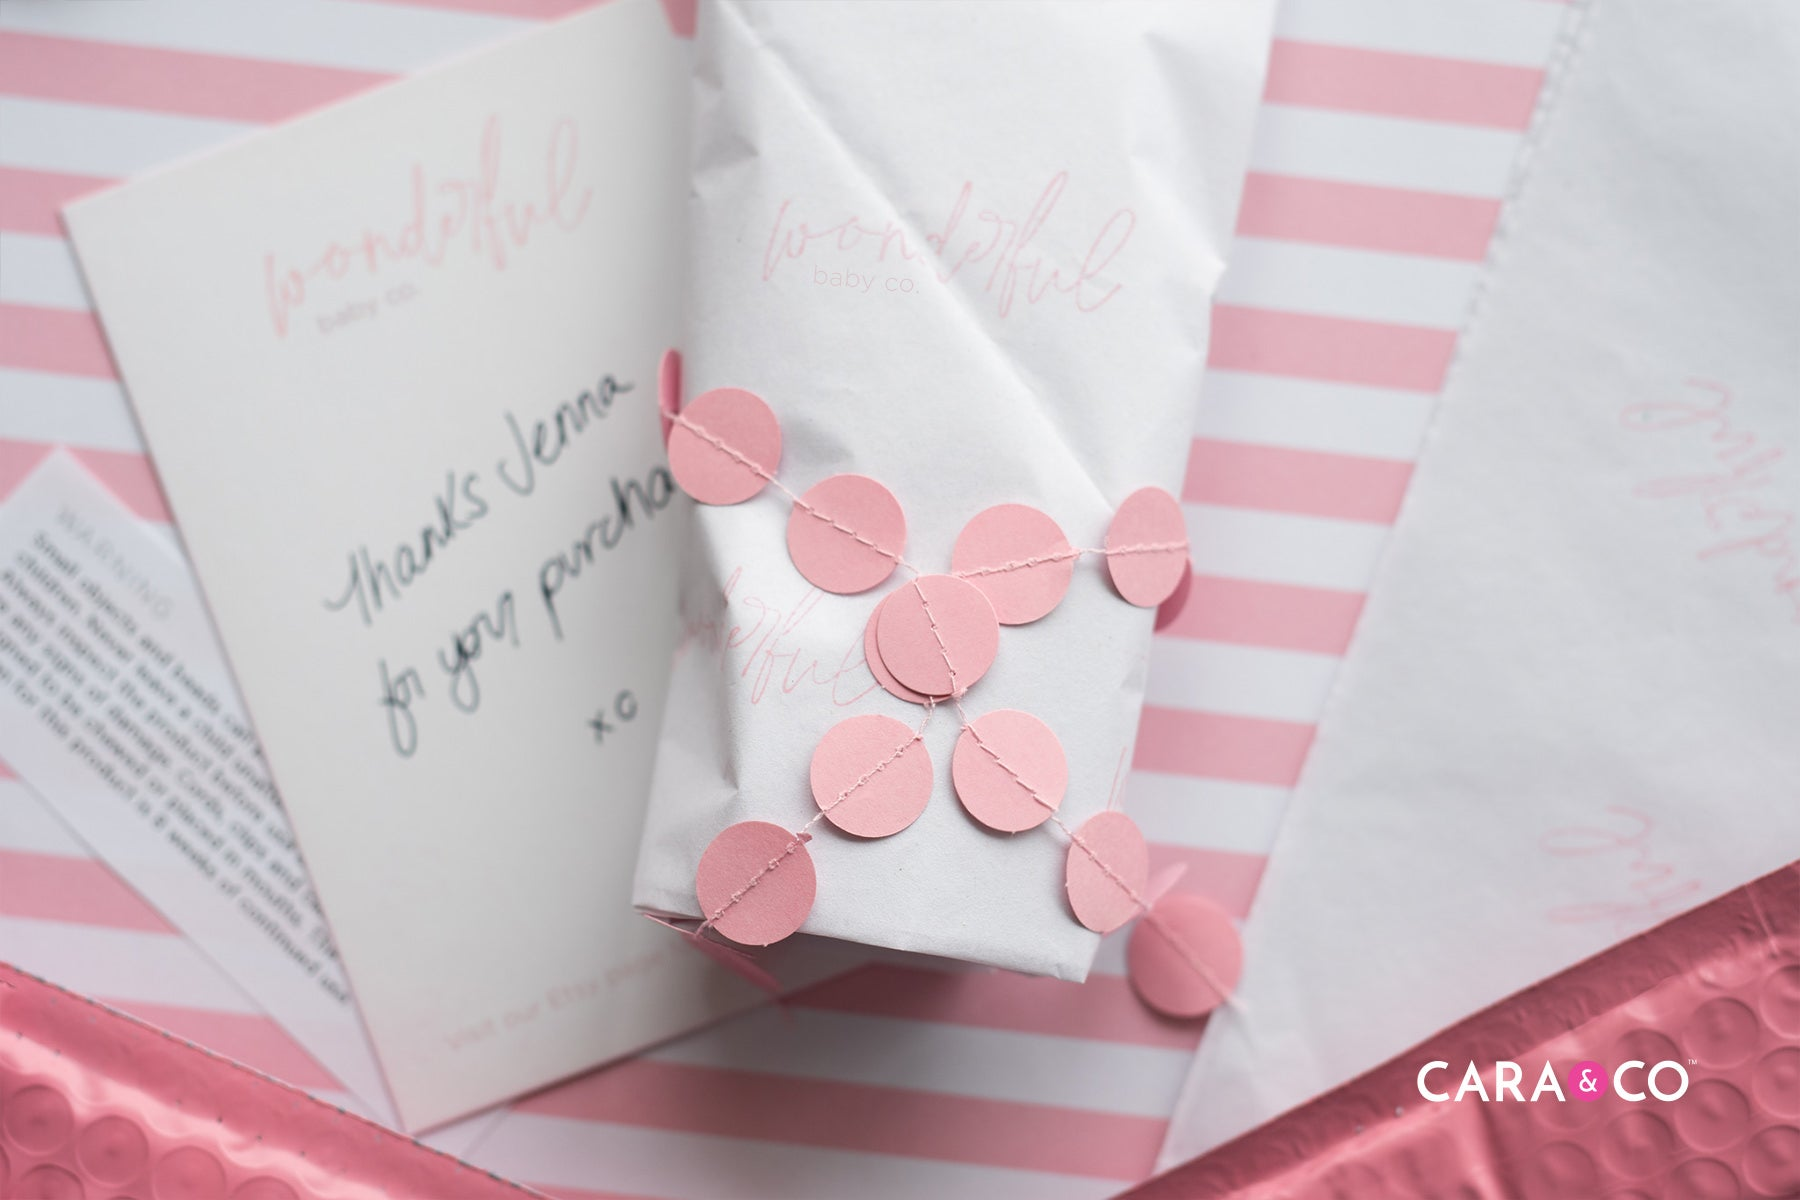 Packaging hacks for your handmade business - Handwritten Thank-You notes!